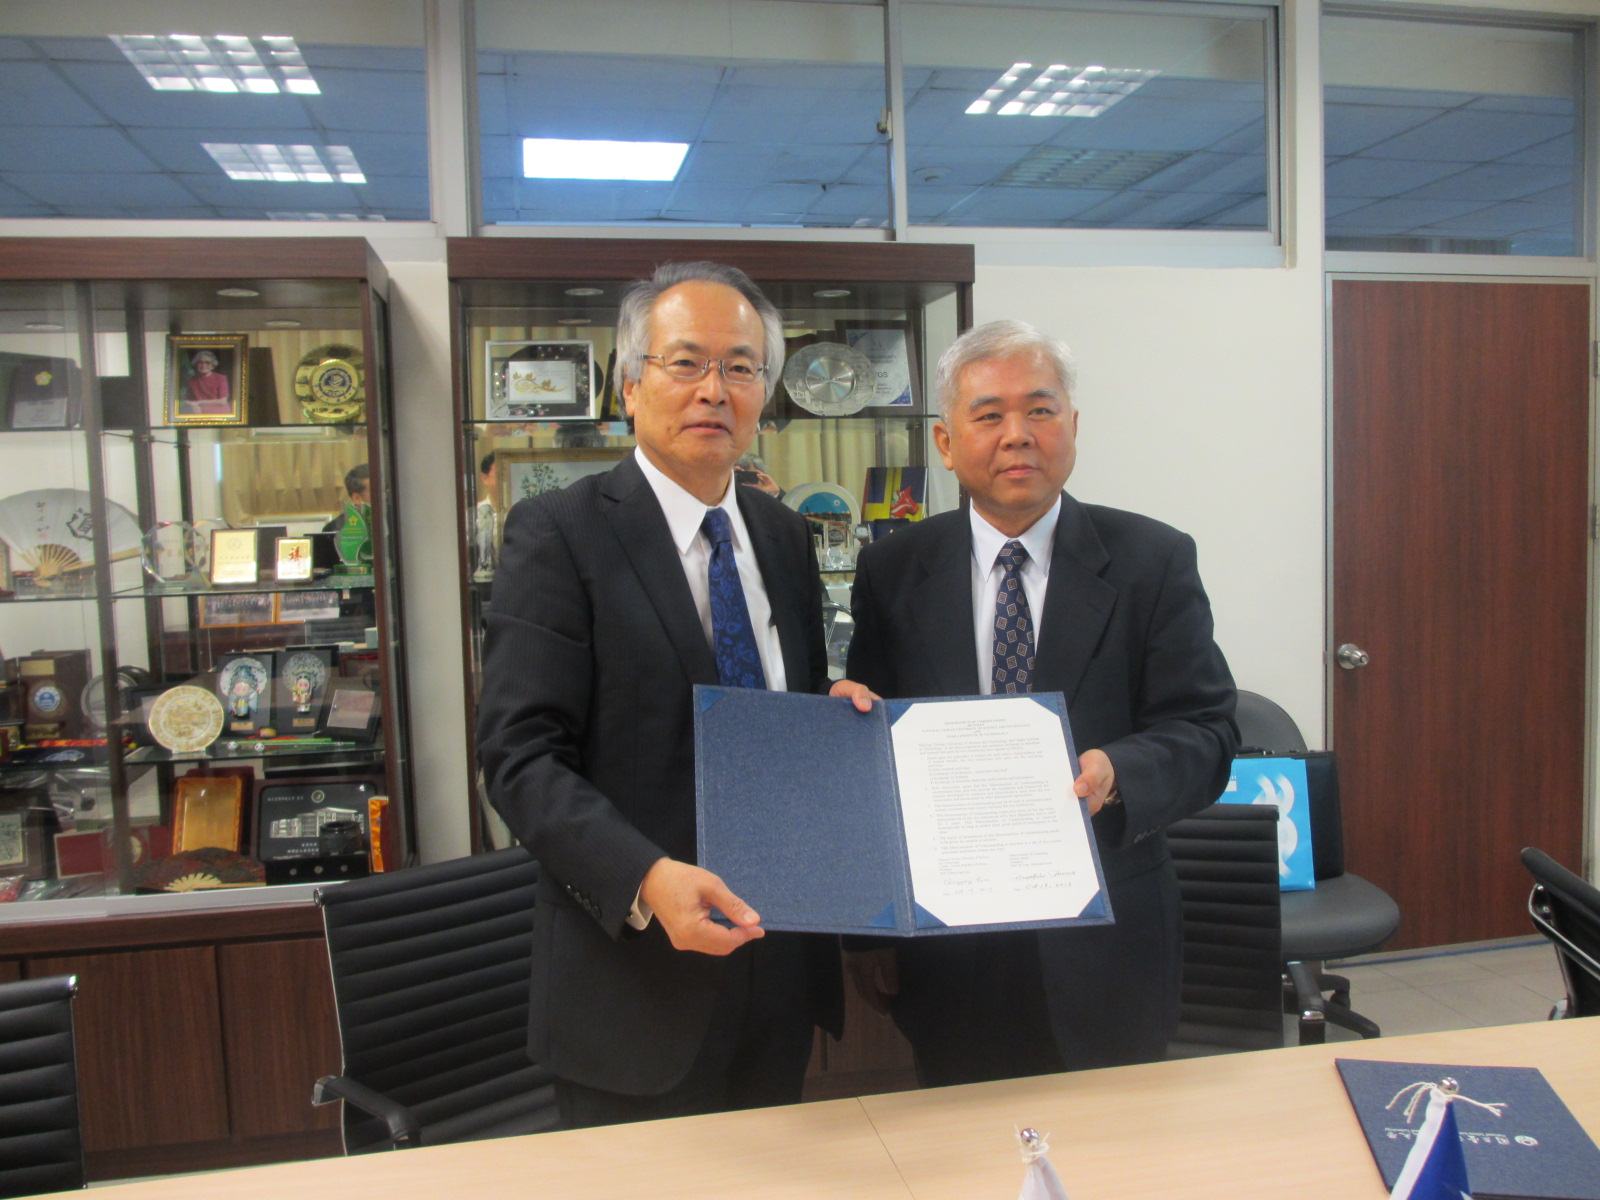 President Inoue (left) and vice president Chou sign MOU